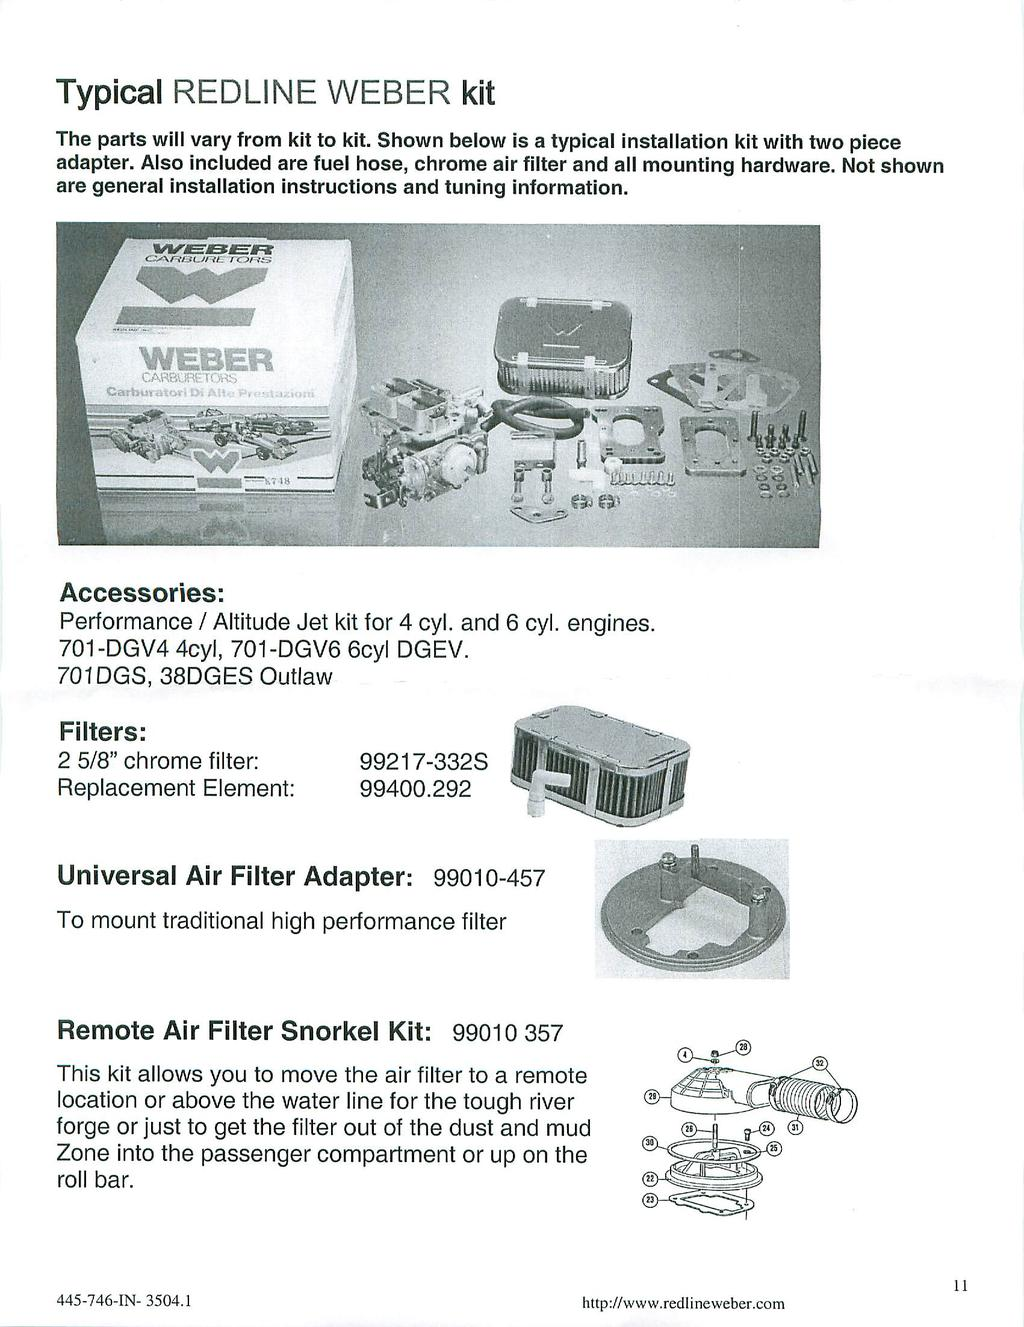 steps of these instructions before beginning this installation  Kit